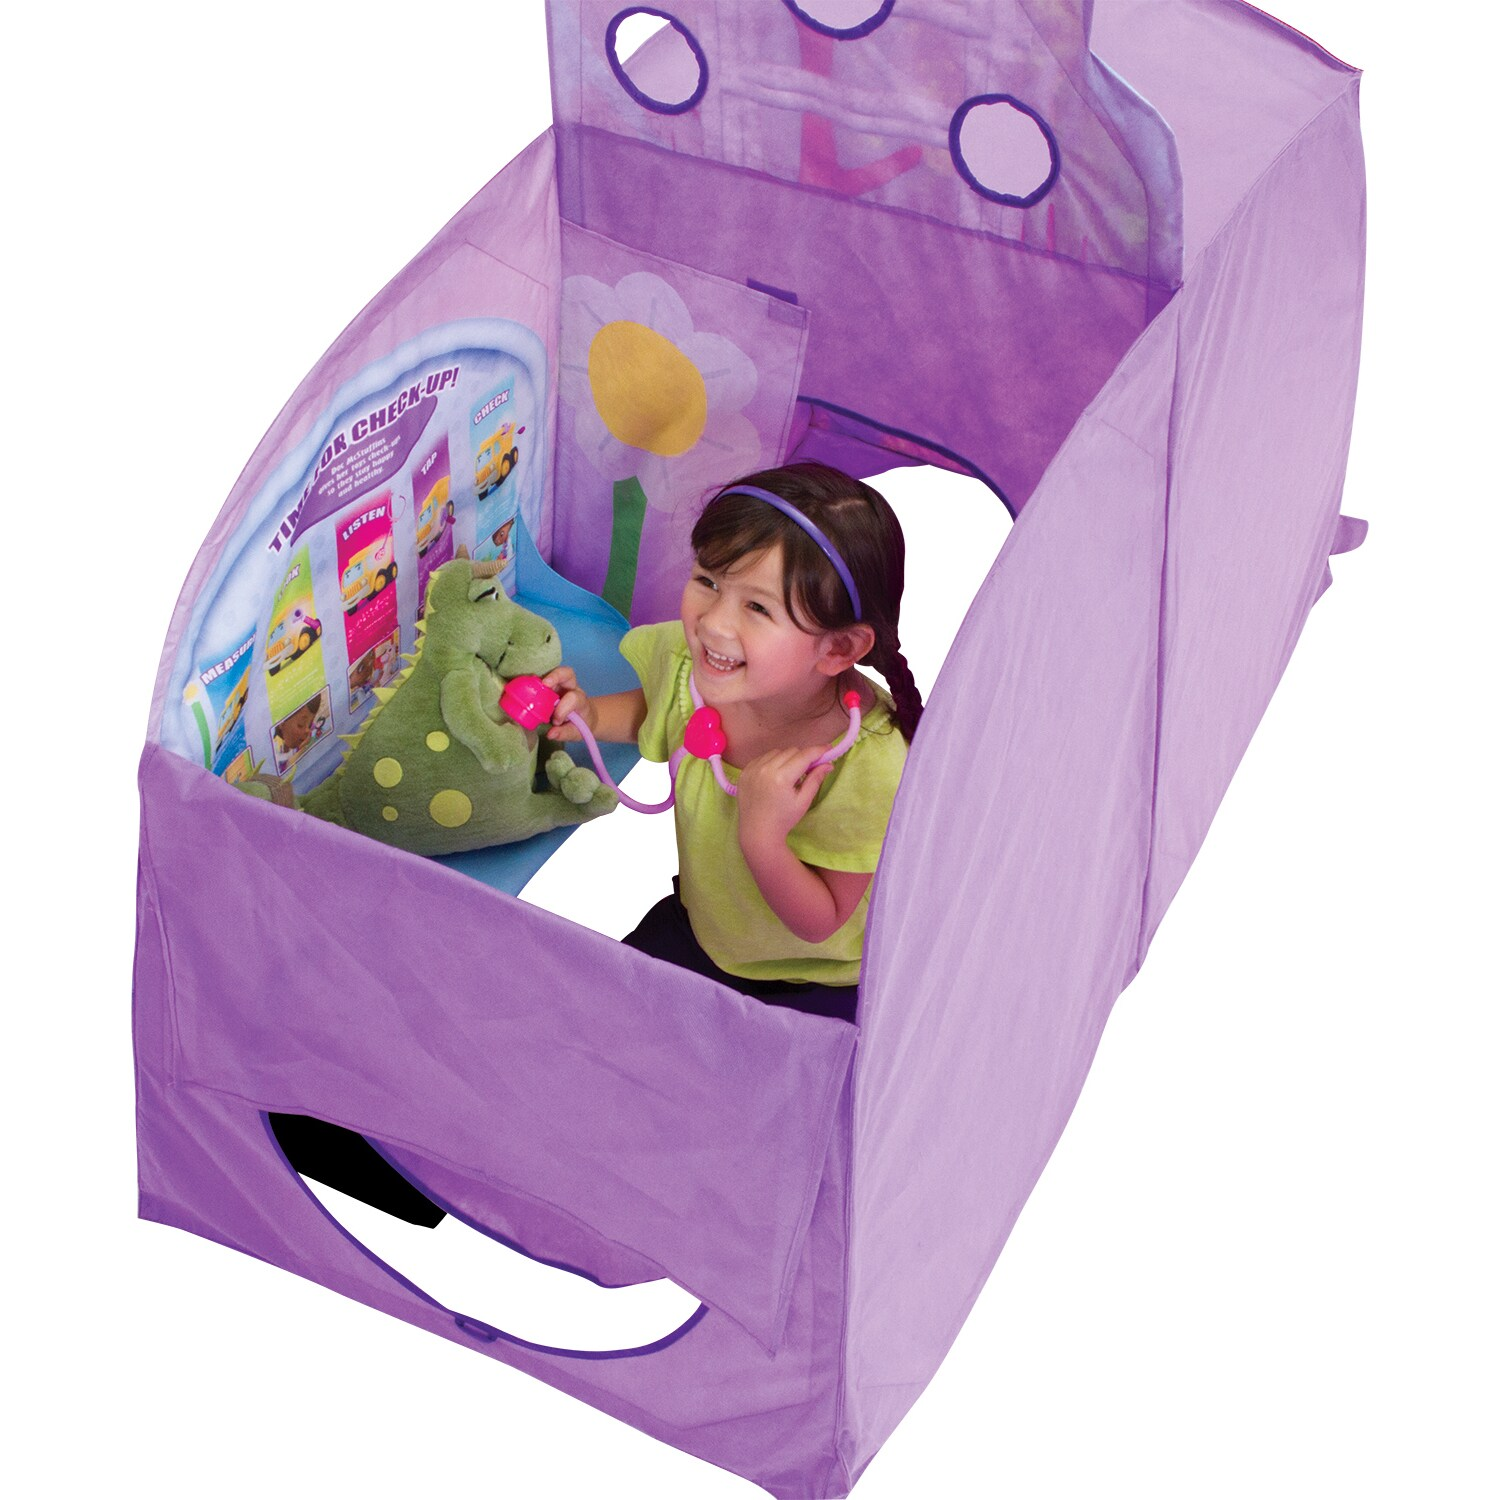 Play Hut Doc McStuffins Mobile Clinic Vehicle - Free Shipping Today - Overstock.com - 19931275  sc 1 st  Overstock.com & Play Hut Doc McStuffins Mobile Clinic Vehicle - Free Shipping ...